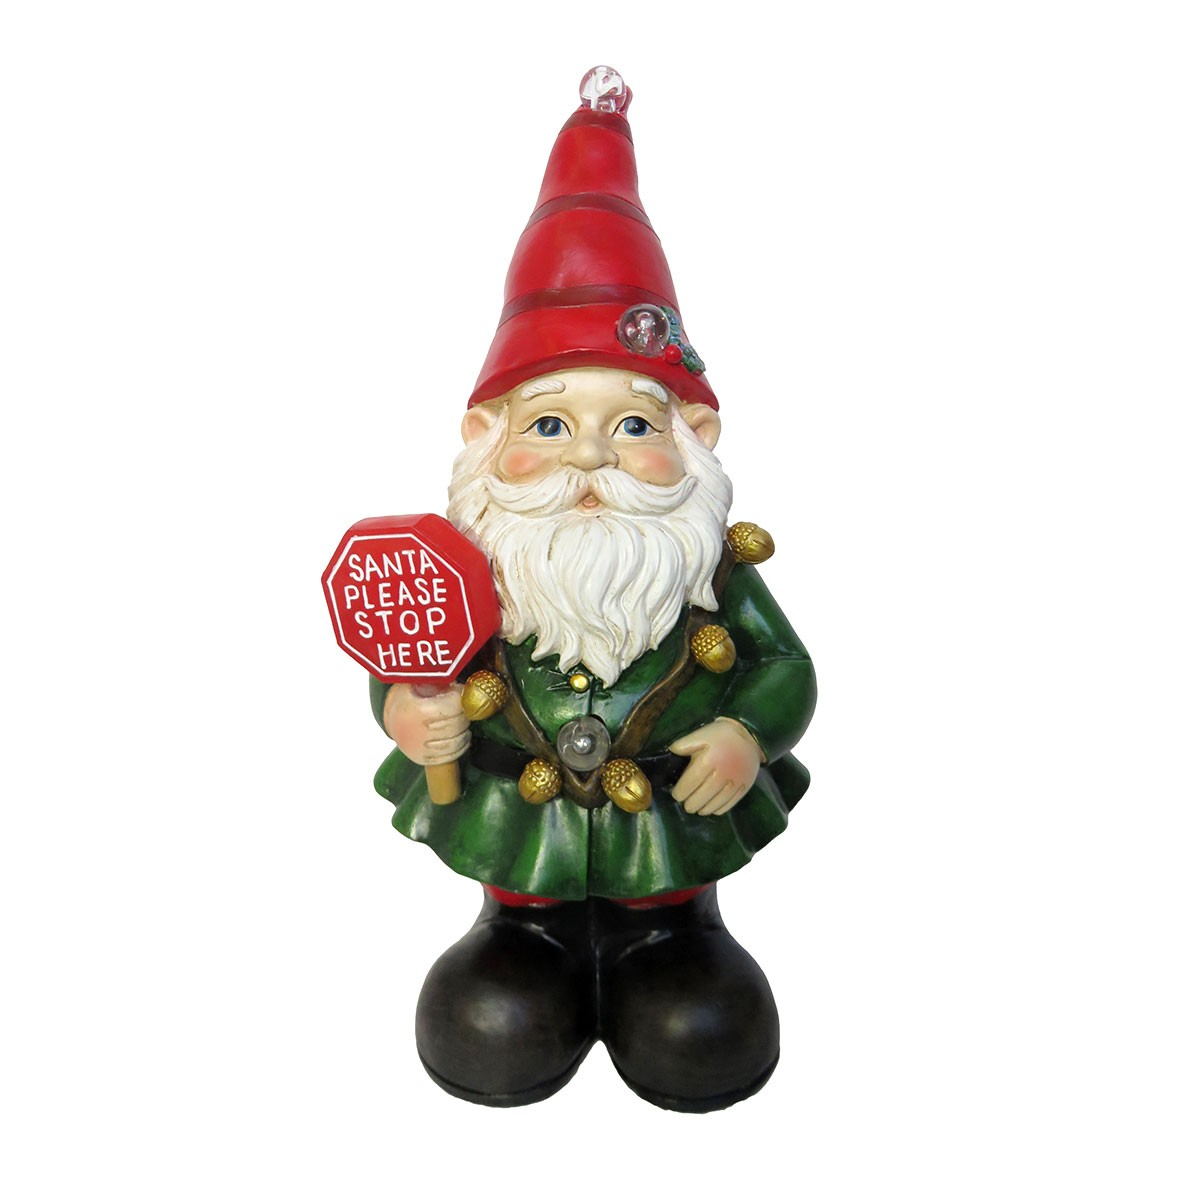 Xmas Gnome Statues with Color Changing LED Lights